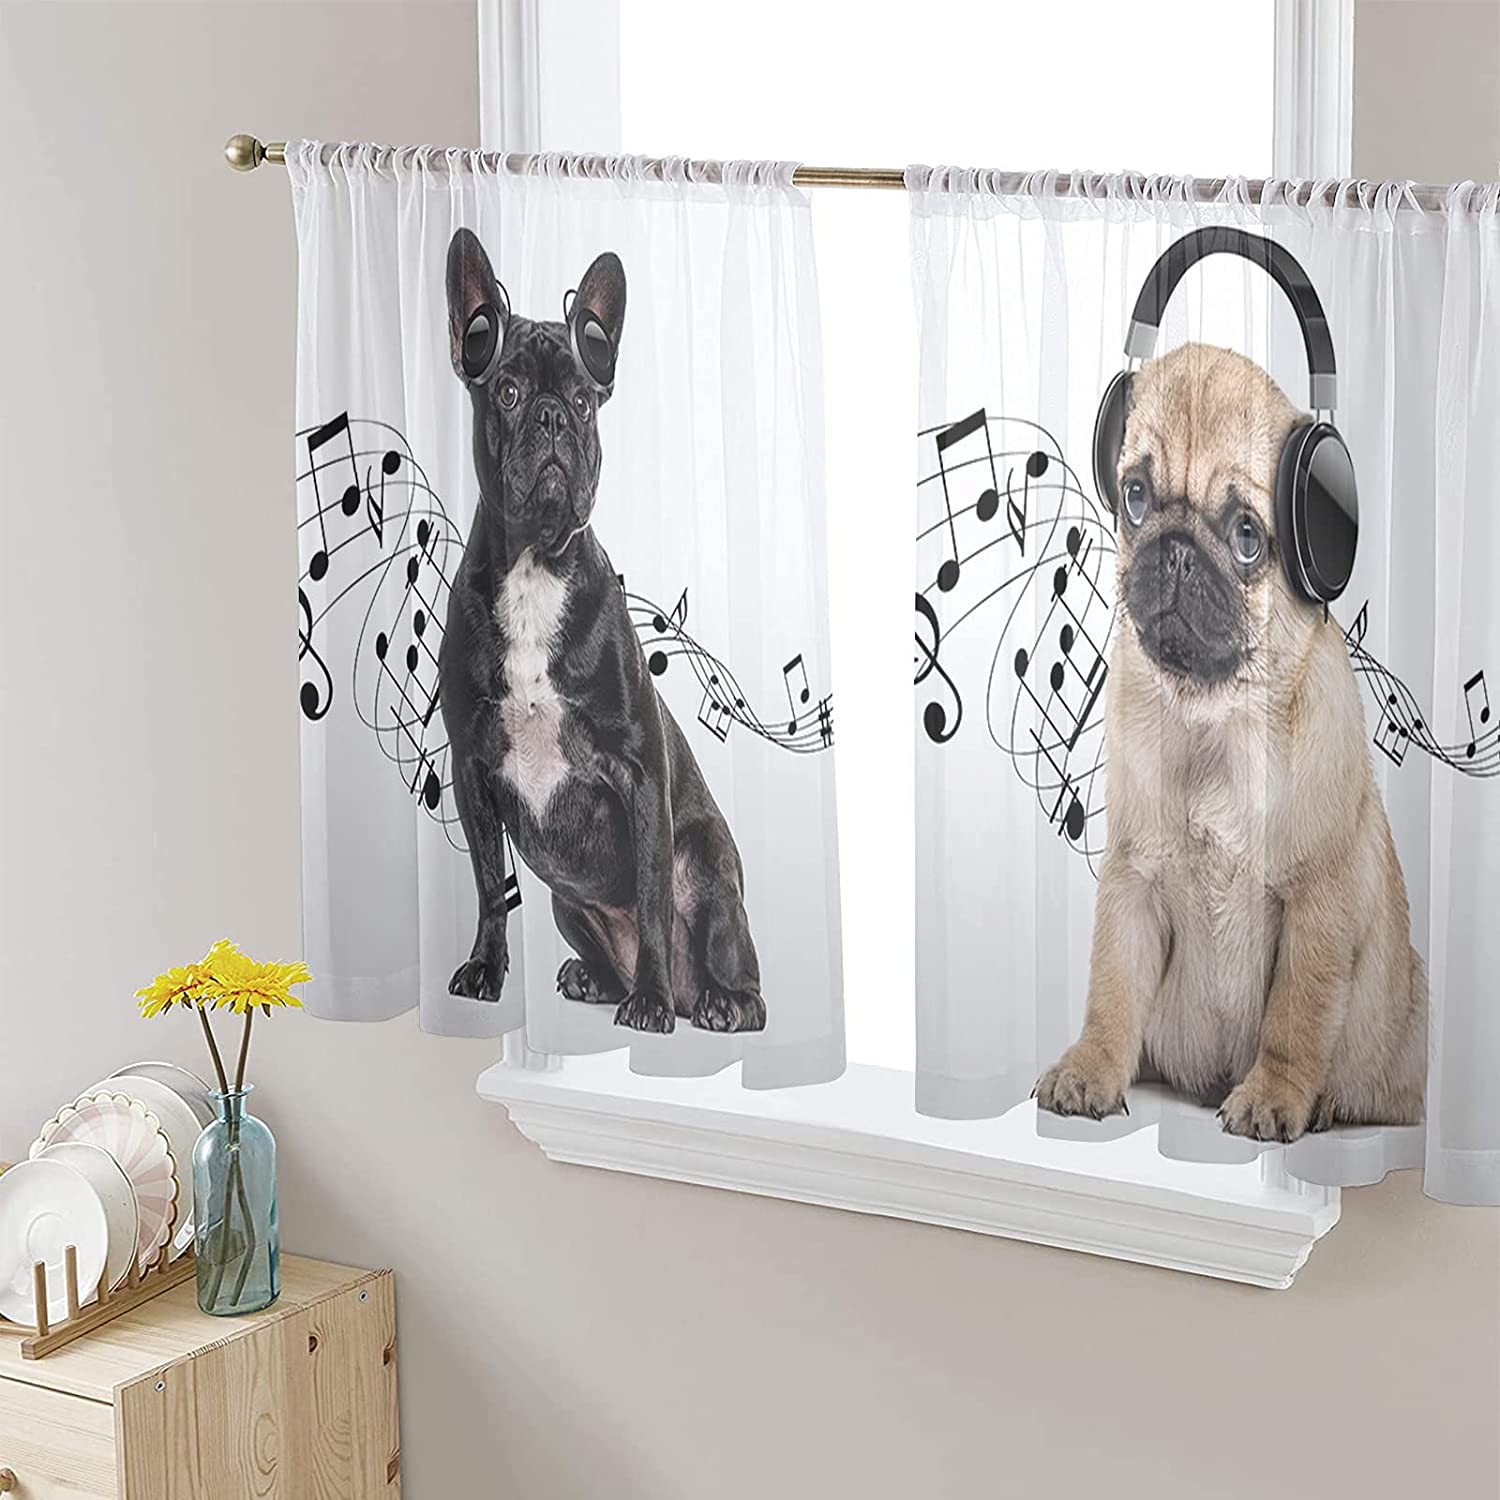 Semi Voile Sheer Window Curtains Baby to Fort Worth Mall Branded goods Music Ro Listening Dog